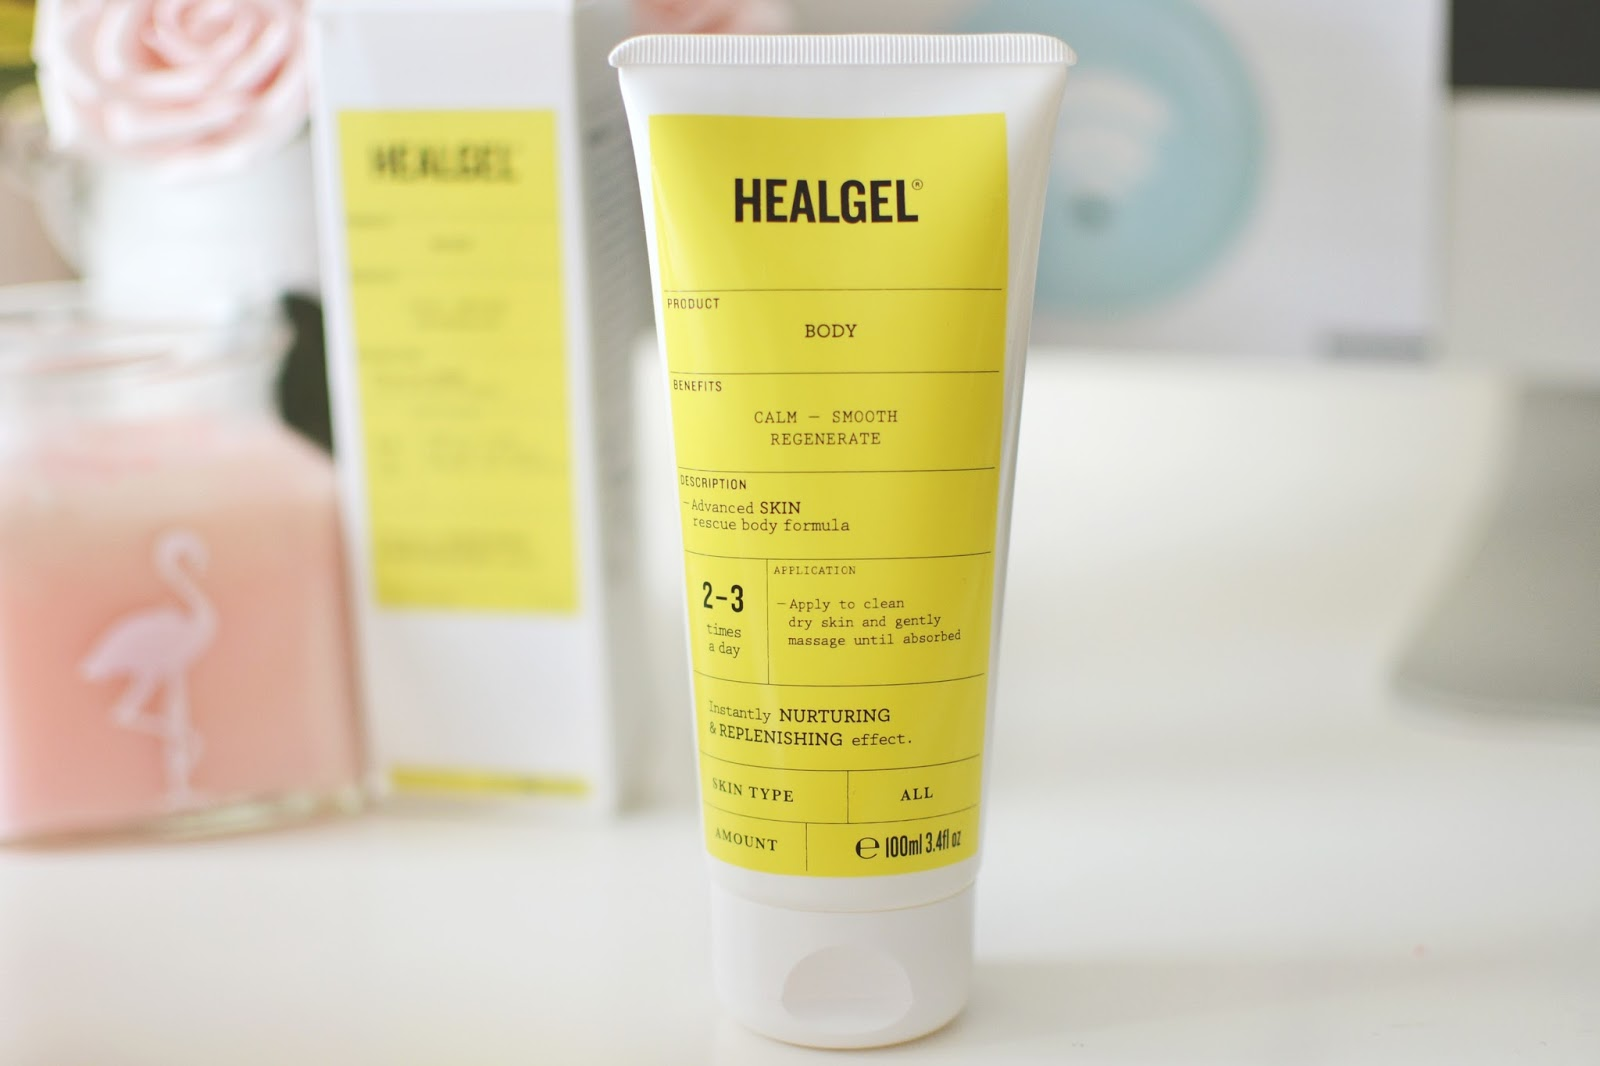 HealGel Body, bodycare for dry skin, products for dry skin, healgel